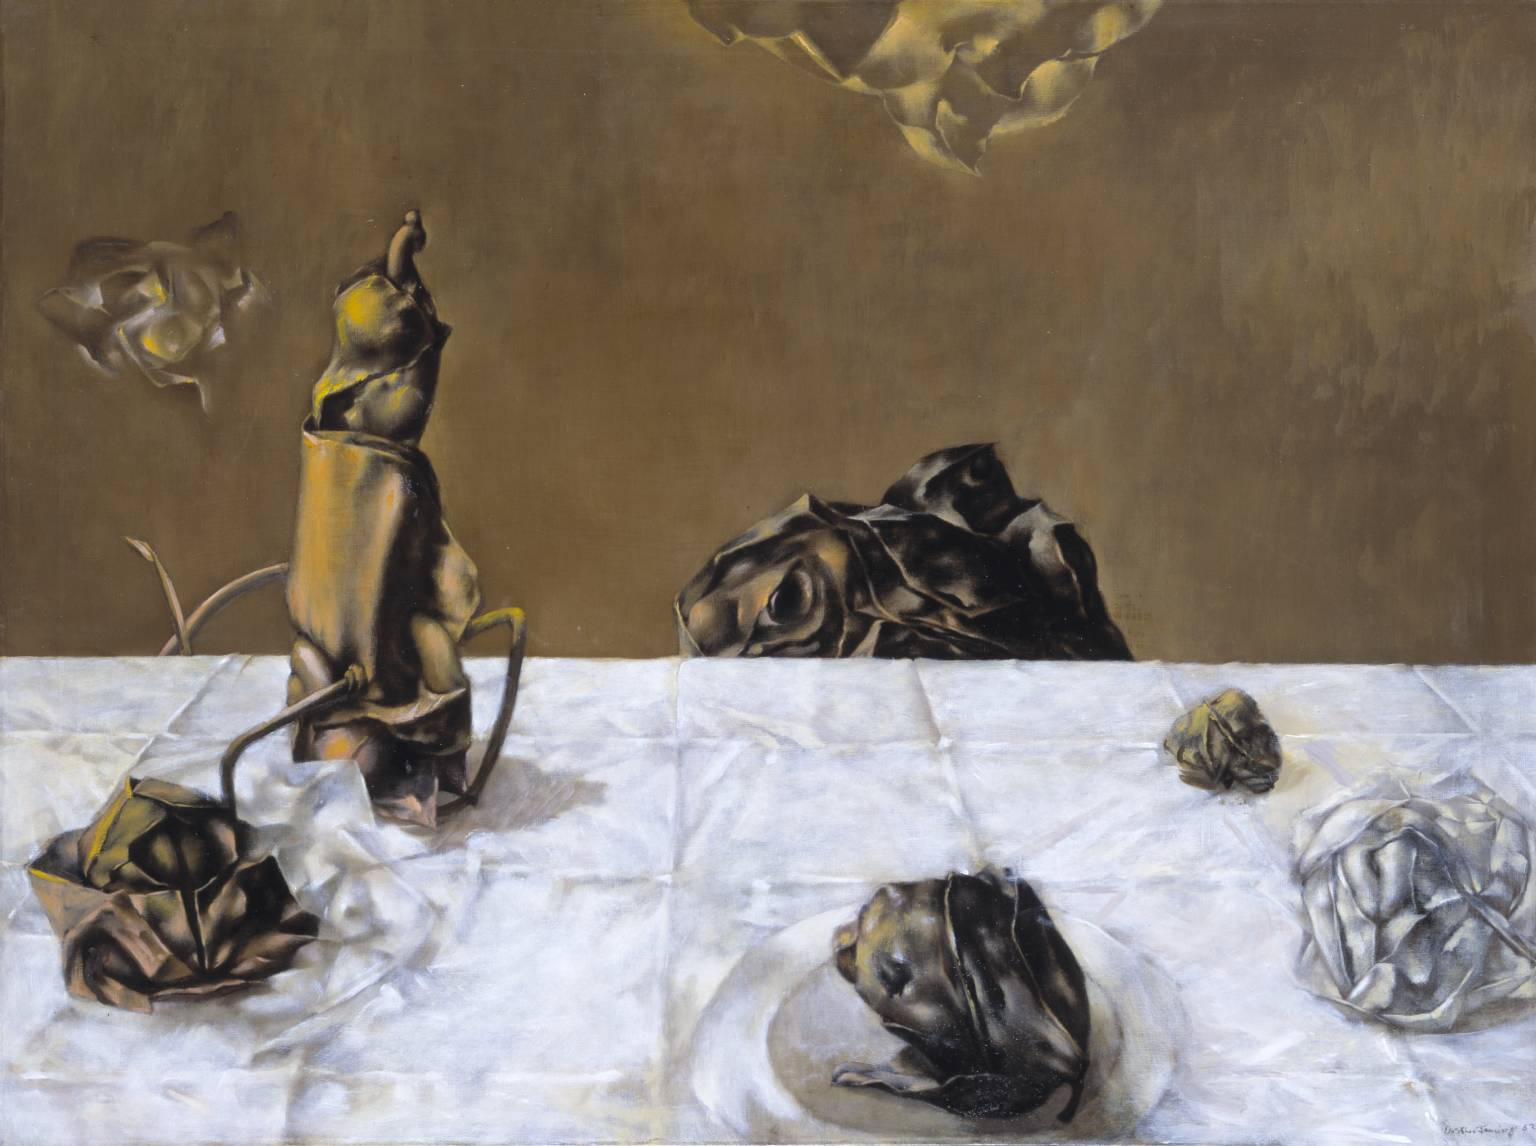 Some Roses and Their Phantoms 1952 by Dorothea Tanning born 1910